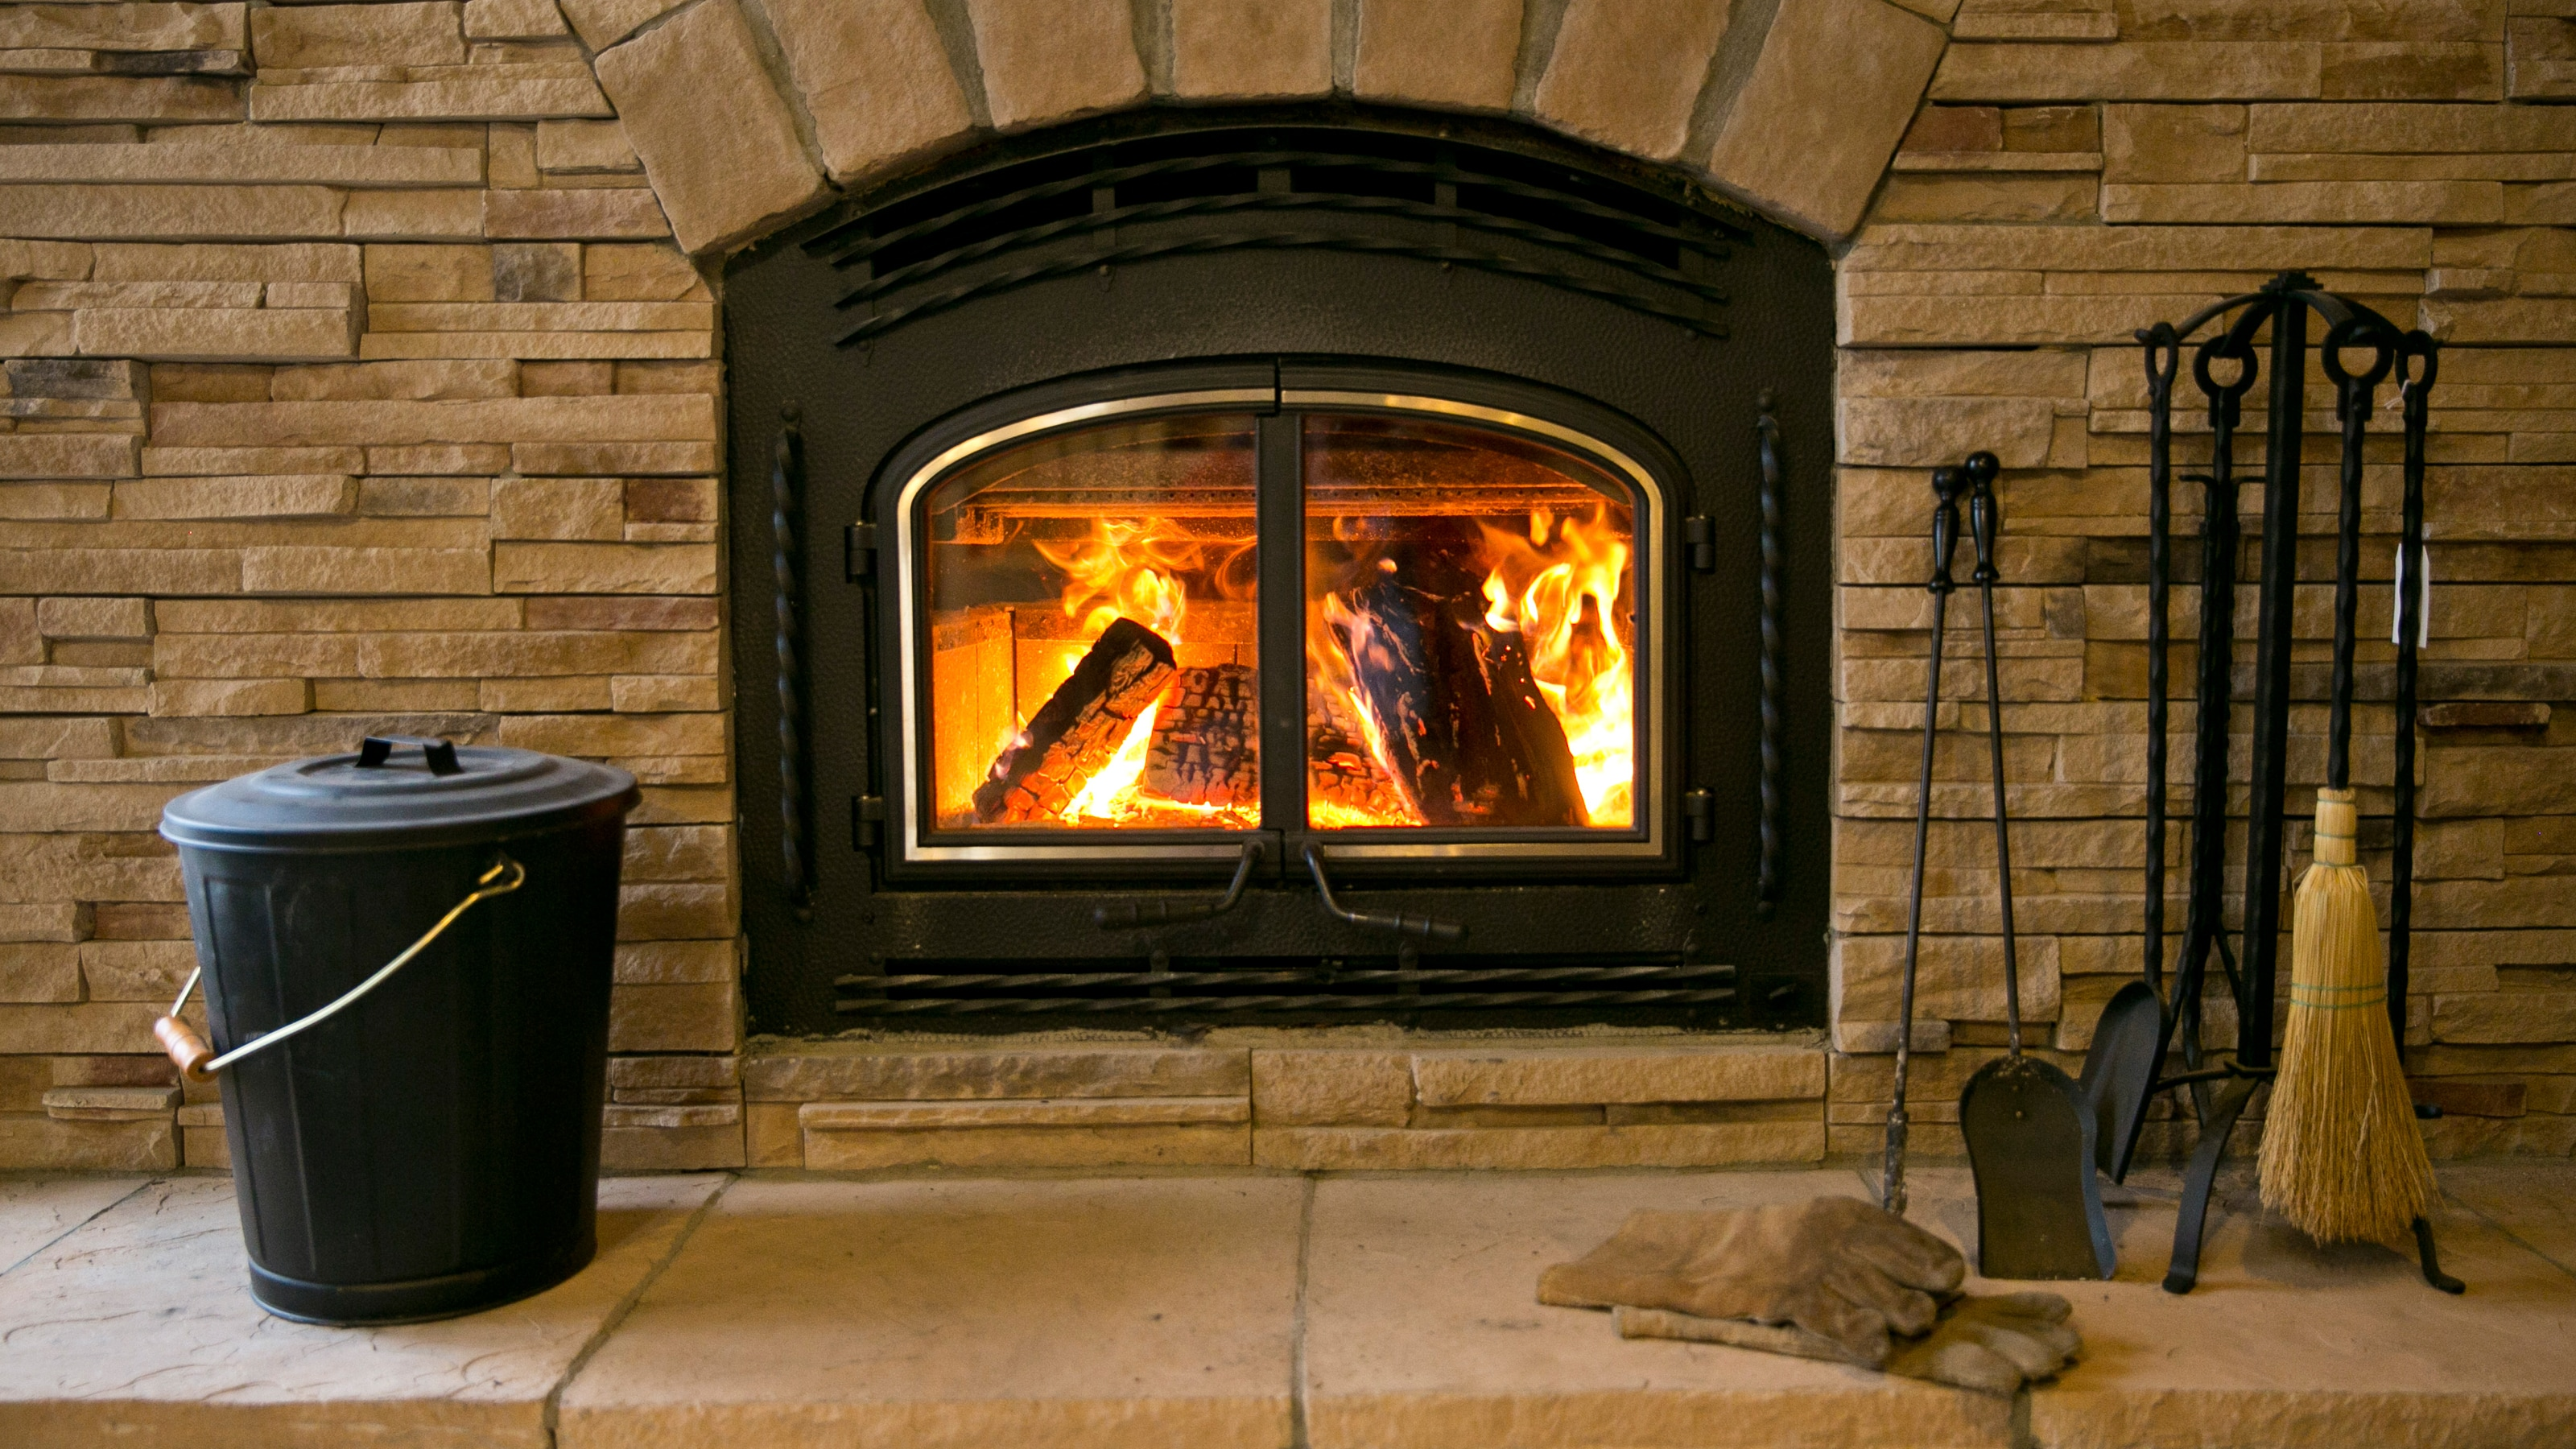 Disadvantages Of Ventless Gas Fireplace Unique How to Convert A Gas Fireplace to Wood Burning